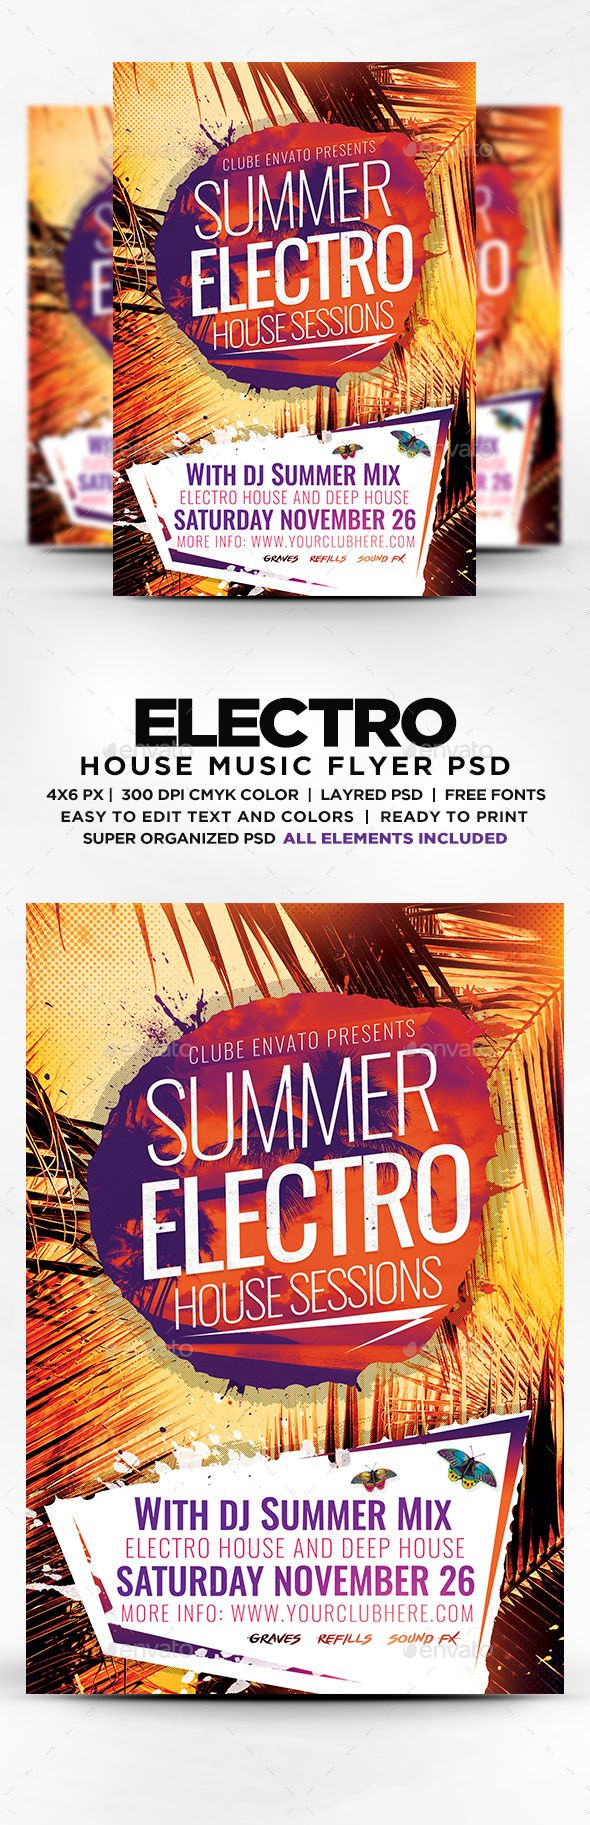 Summer Electro House Sessions Flyer  — PSD Template #special guest dj #summer electro • Download ➝ https://graphicriver.net/item/summer-electro-house-sessions-flyer/18435381?ref=pxcr